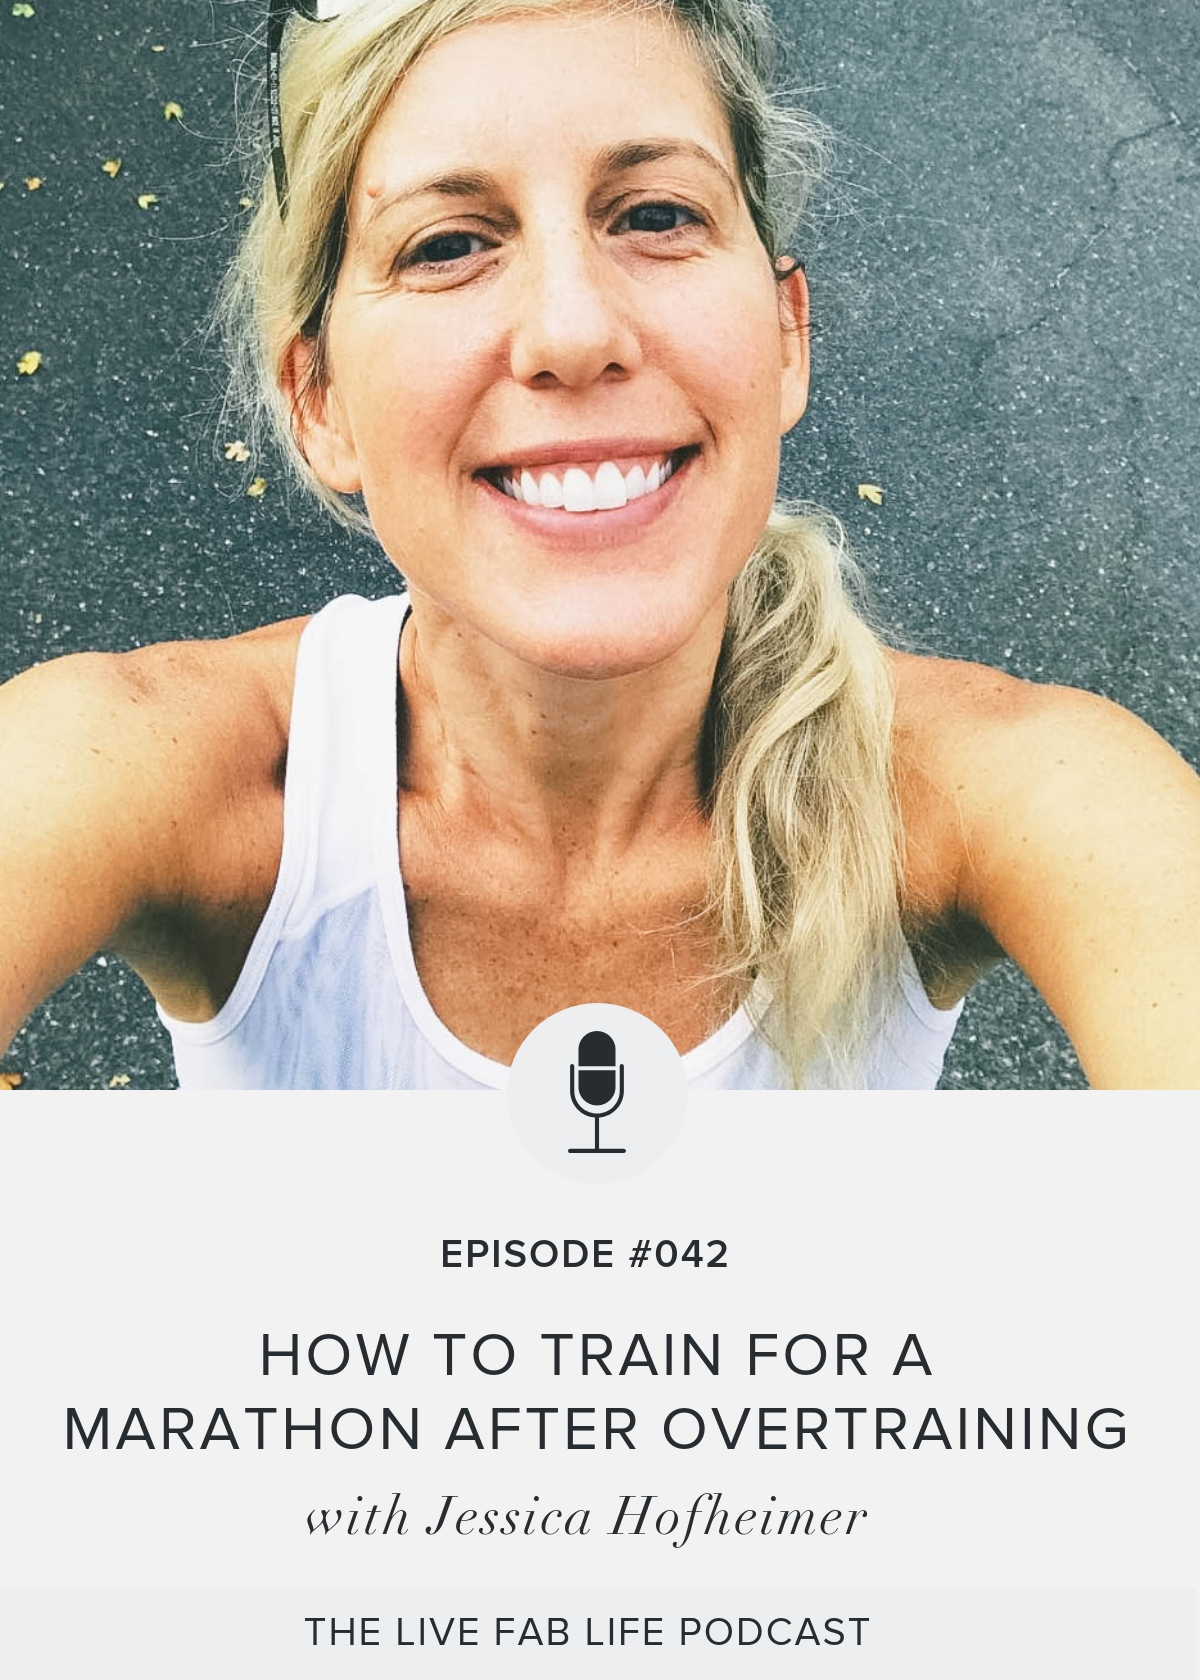 Episode 042: How To Train For A Marathon After Overtraining with Jessica Hofheimer